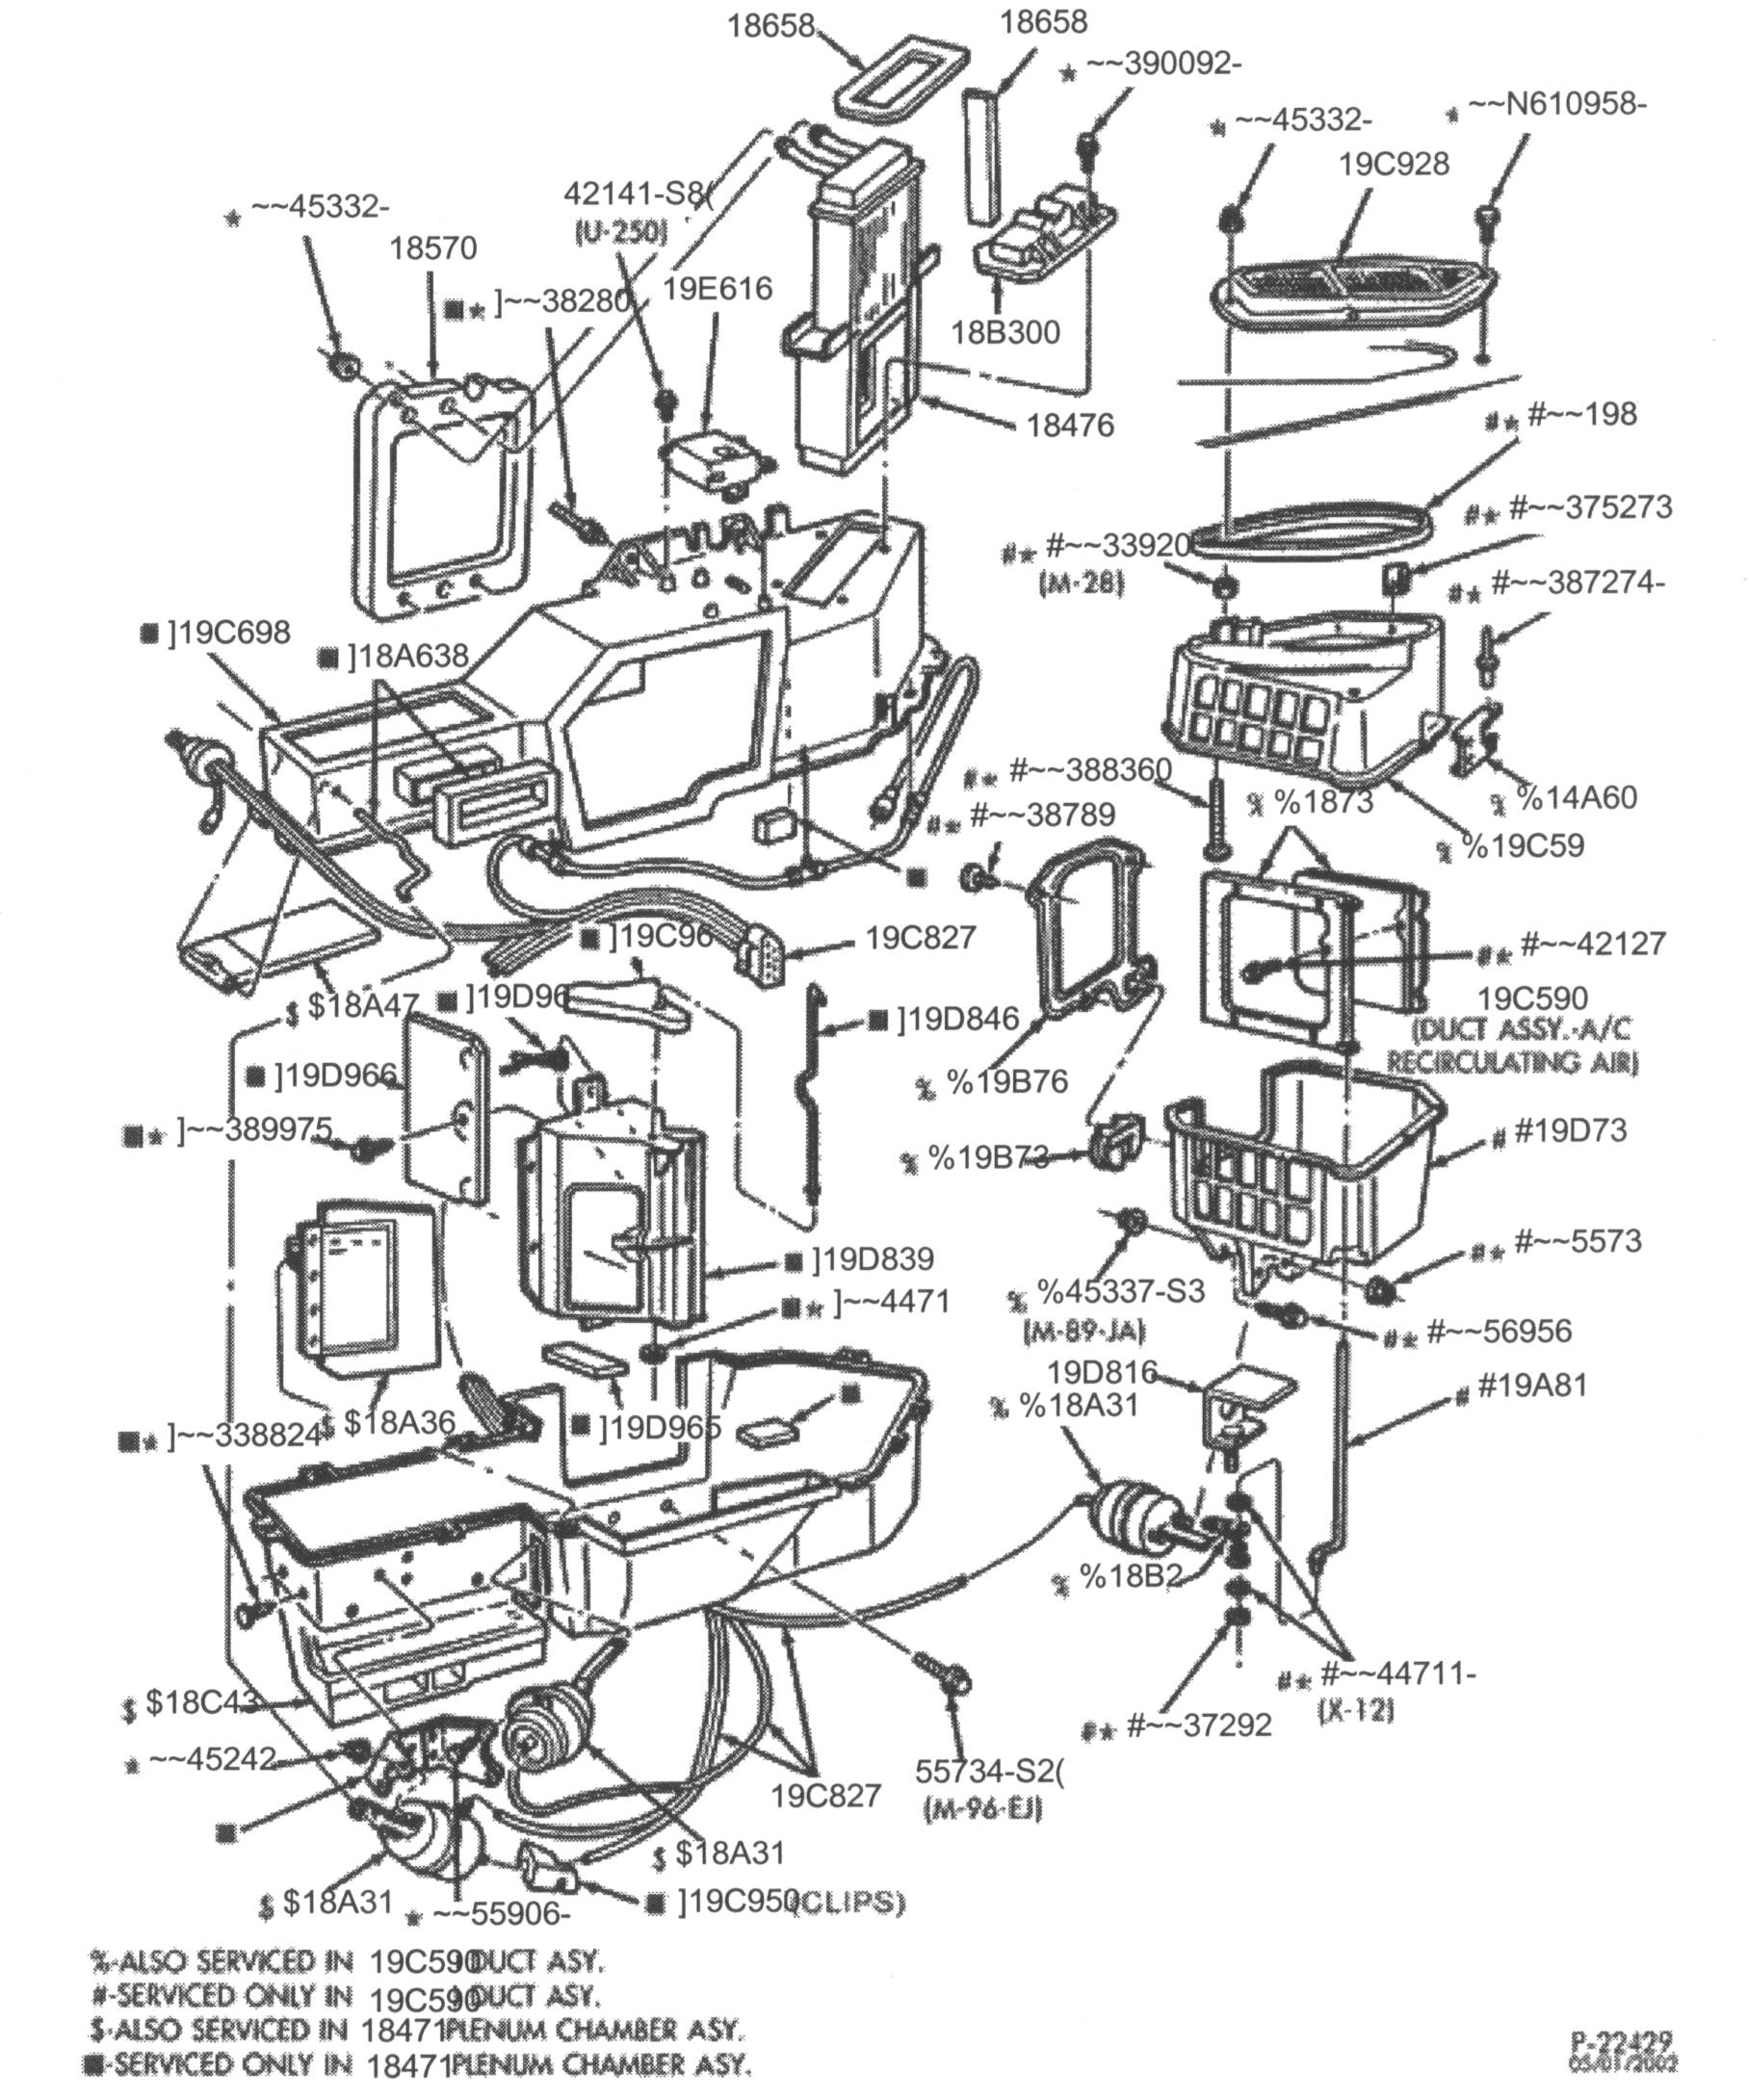 2005 grand prix hvac wiring diagram